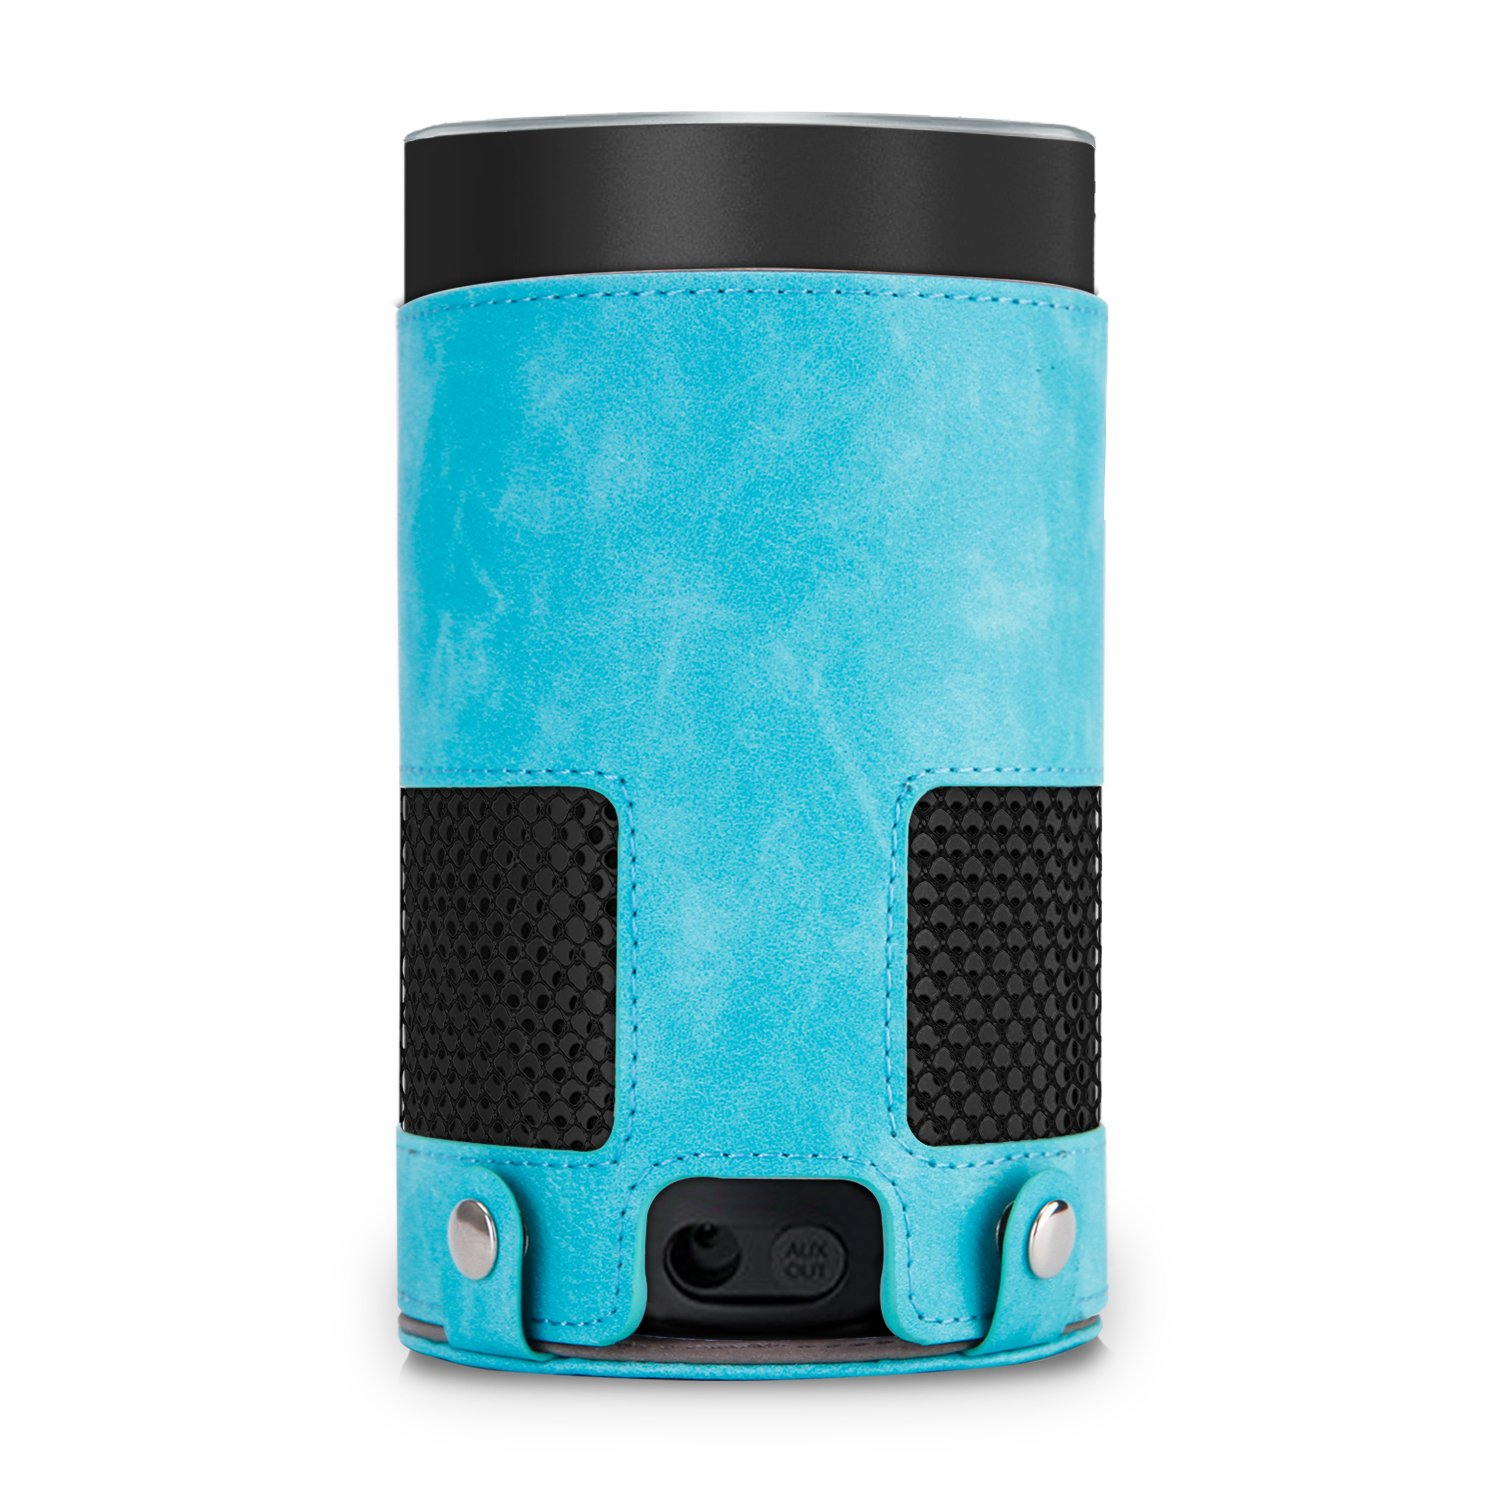 Protective case for Amazon Echo(2nd Generation) portable for outdoors travel,hiking and camping,etc,made of premium polyurethane with mixed styles of being simple,vintage and fashionable (Sky blue)